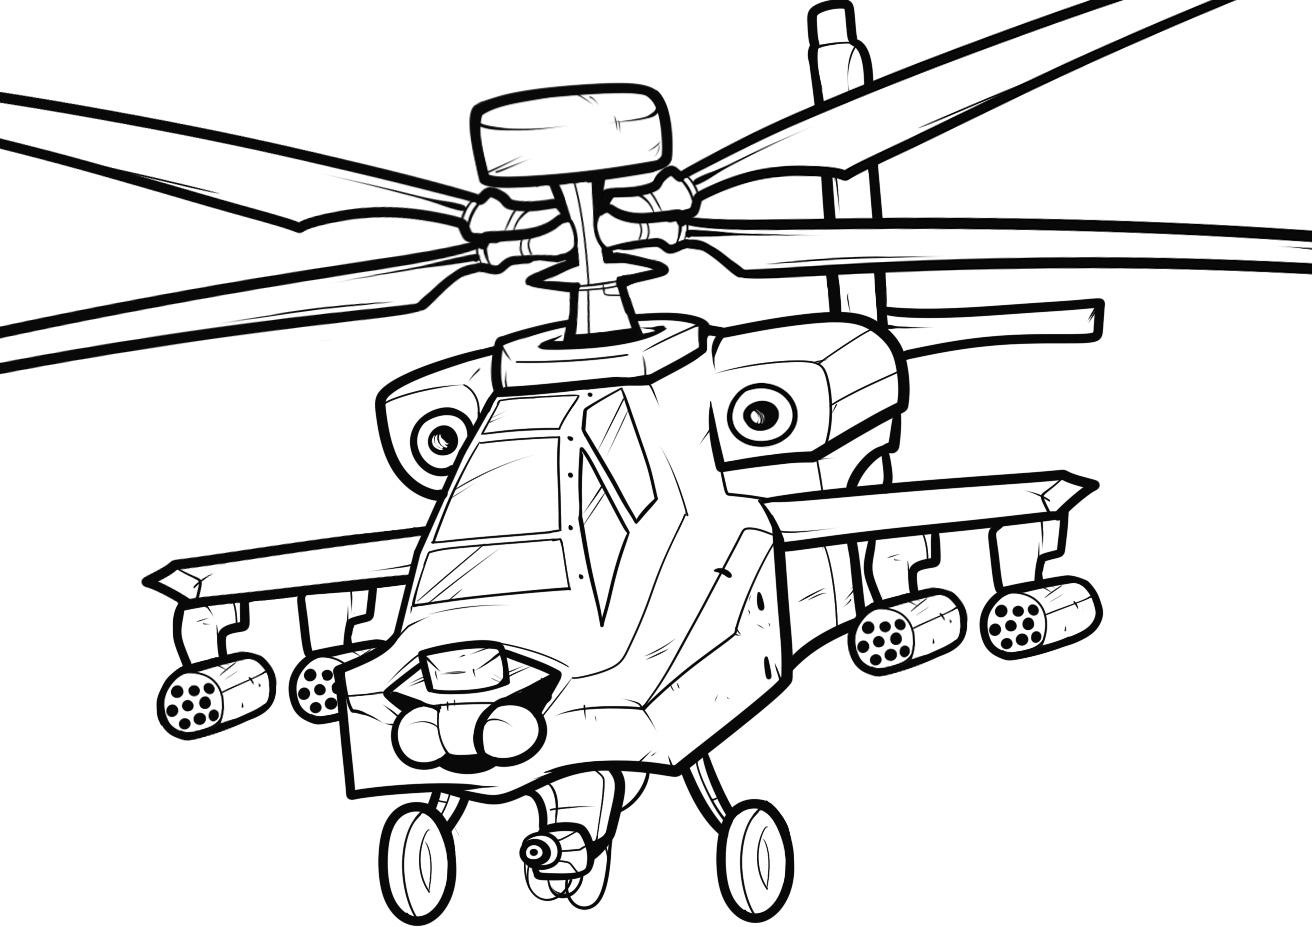 helicopter printable free printable helicopter coloring pages for kids helicopter printable